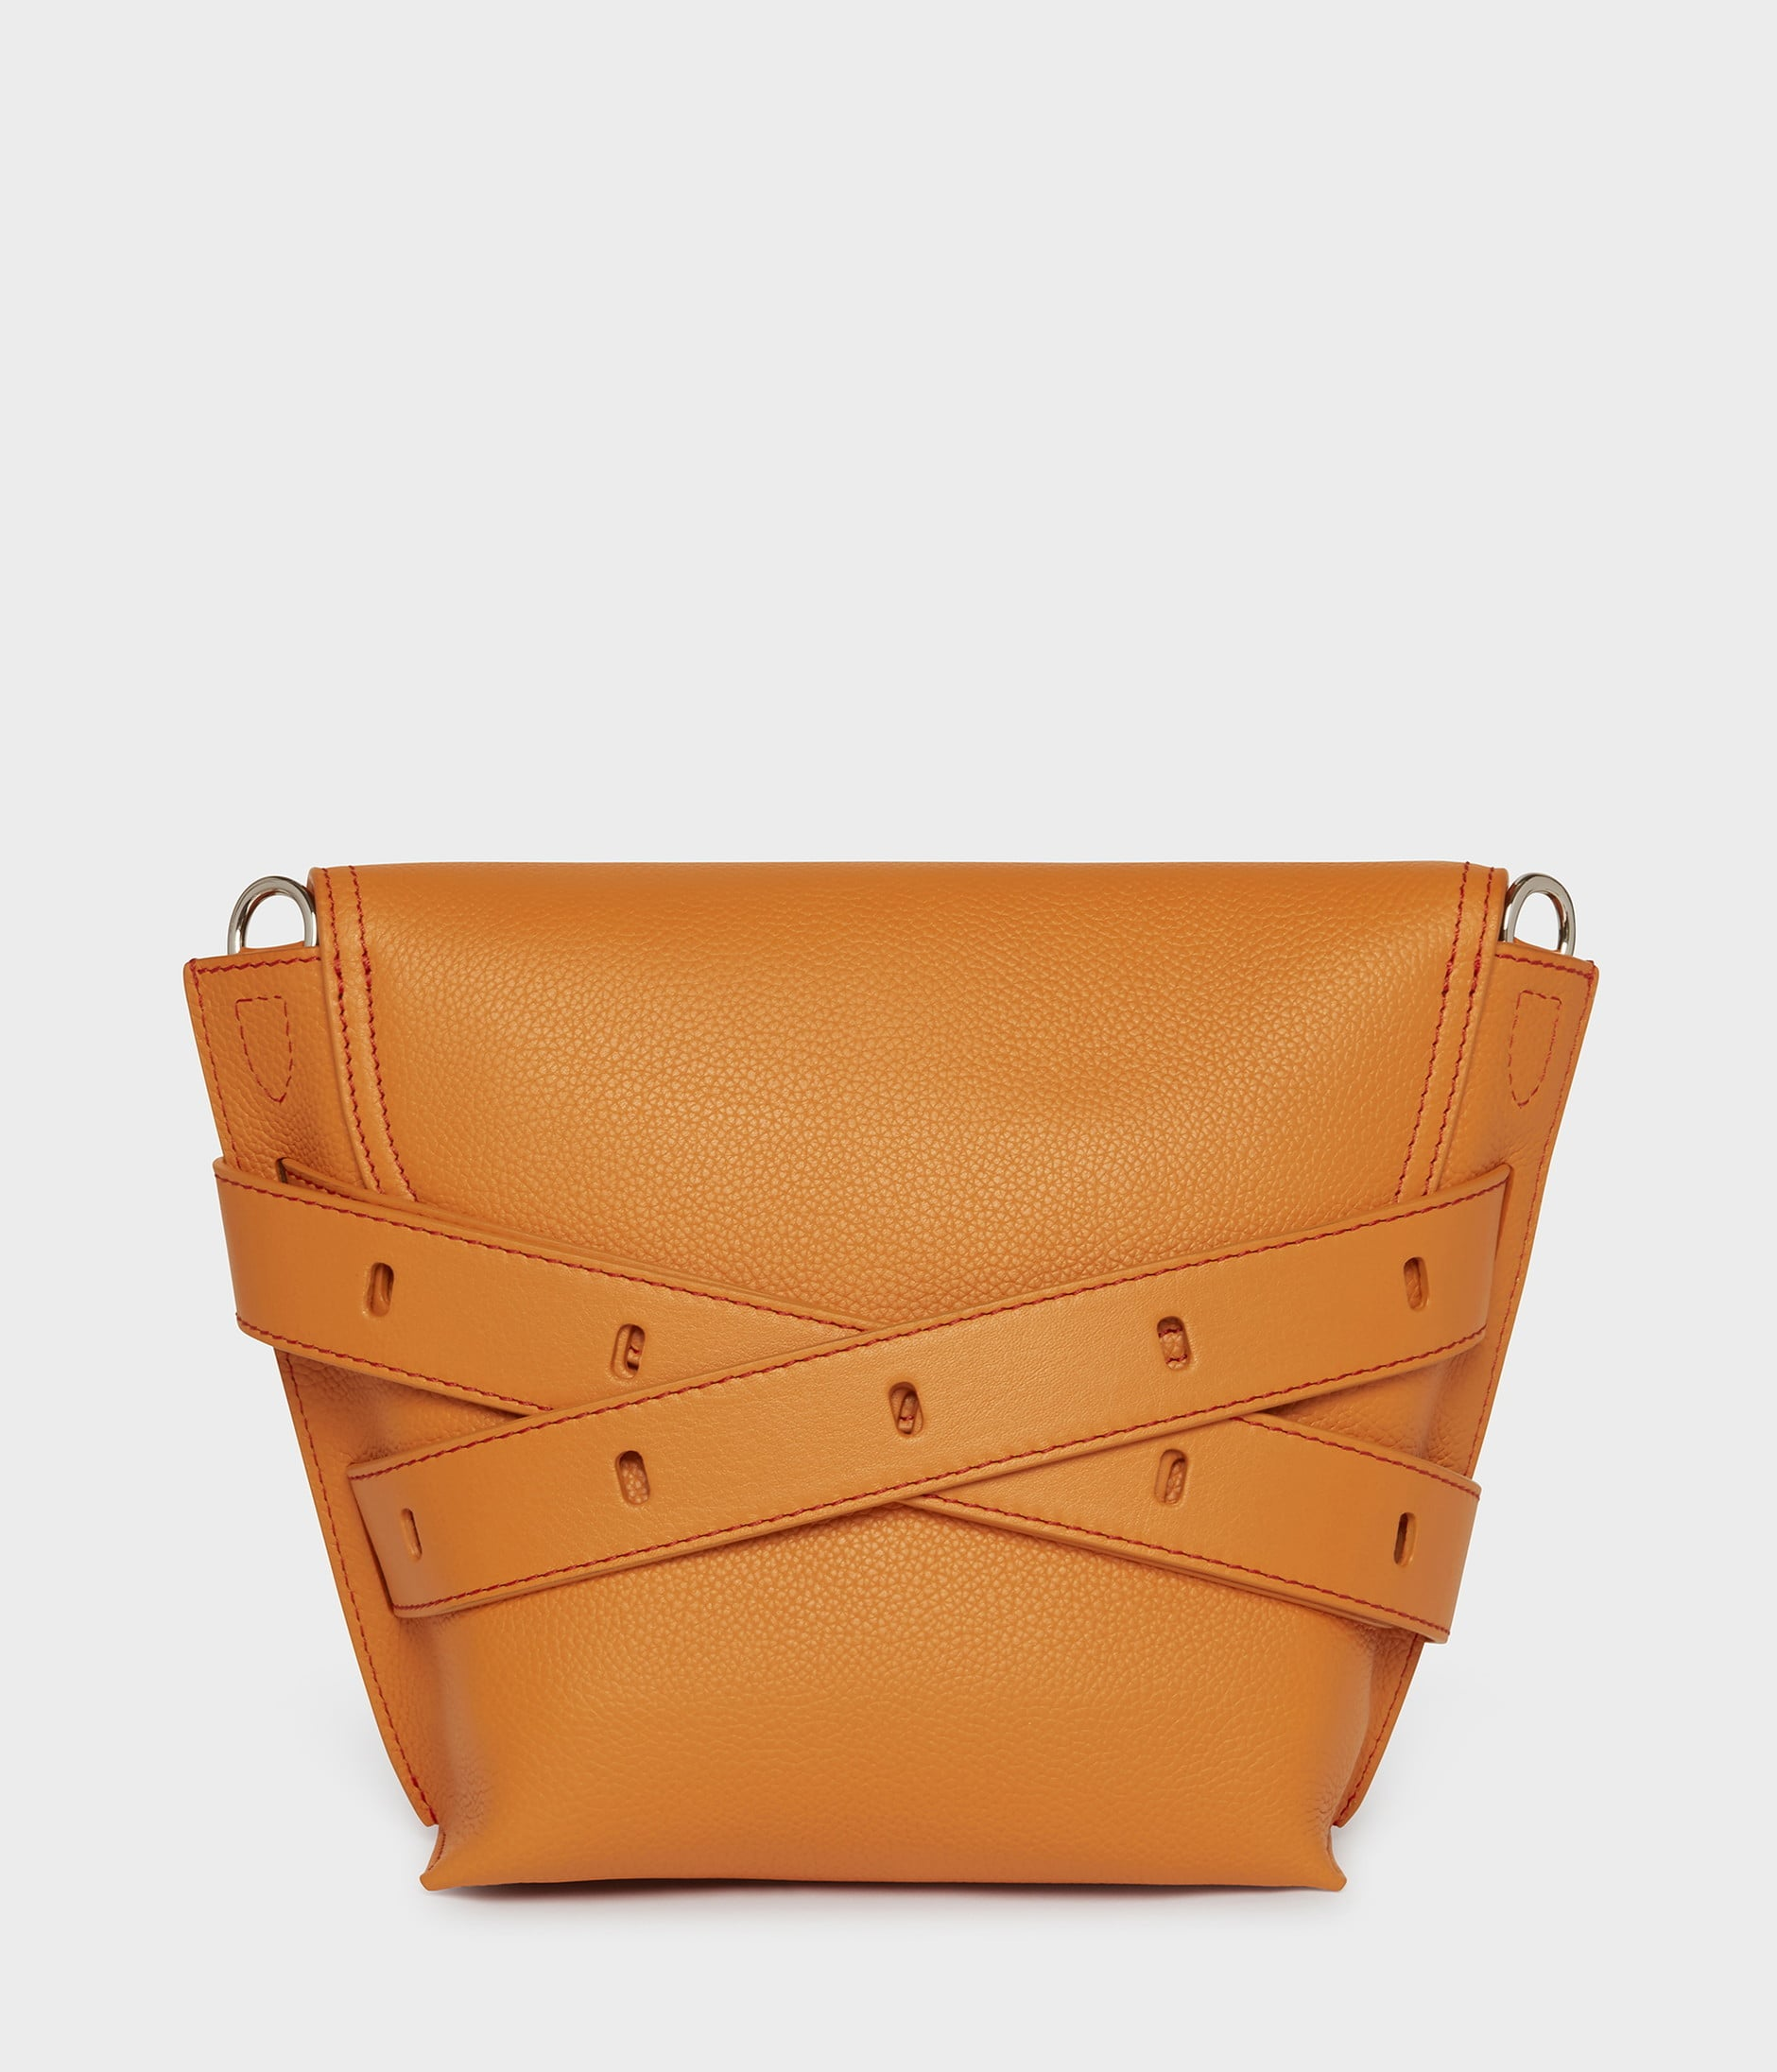 THE BELT BAG 詳細画像 TANGERINE ORANGE 2